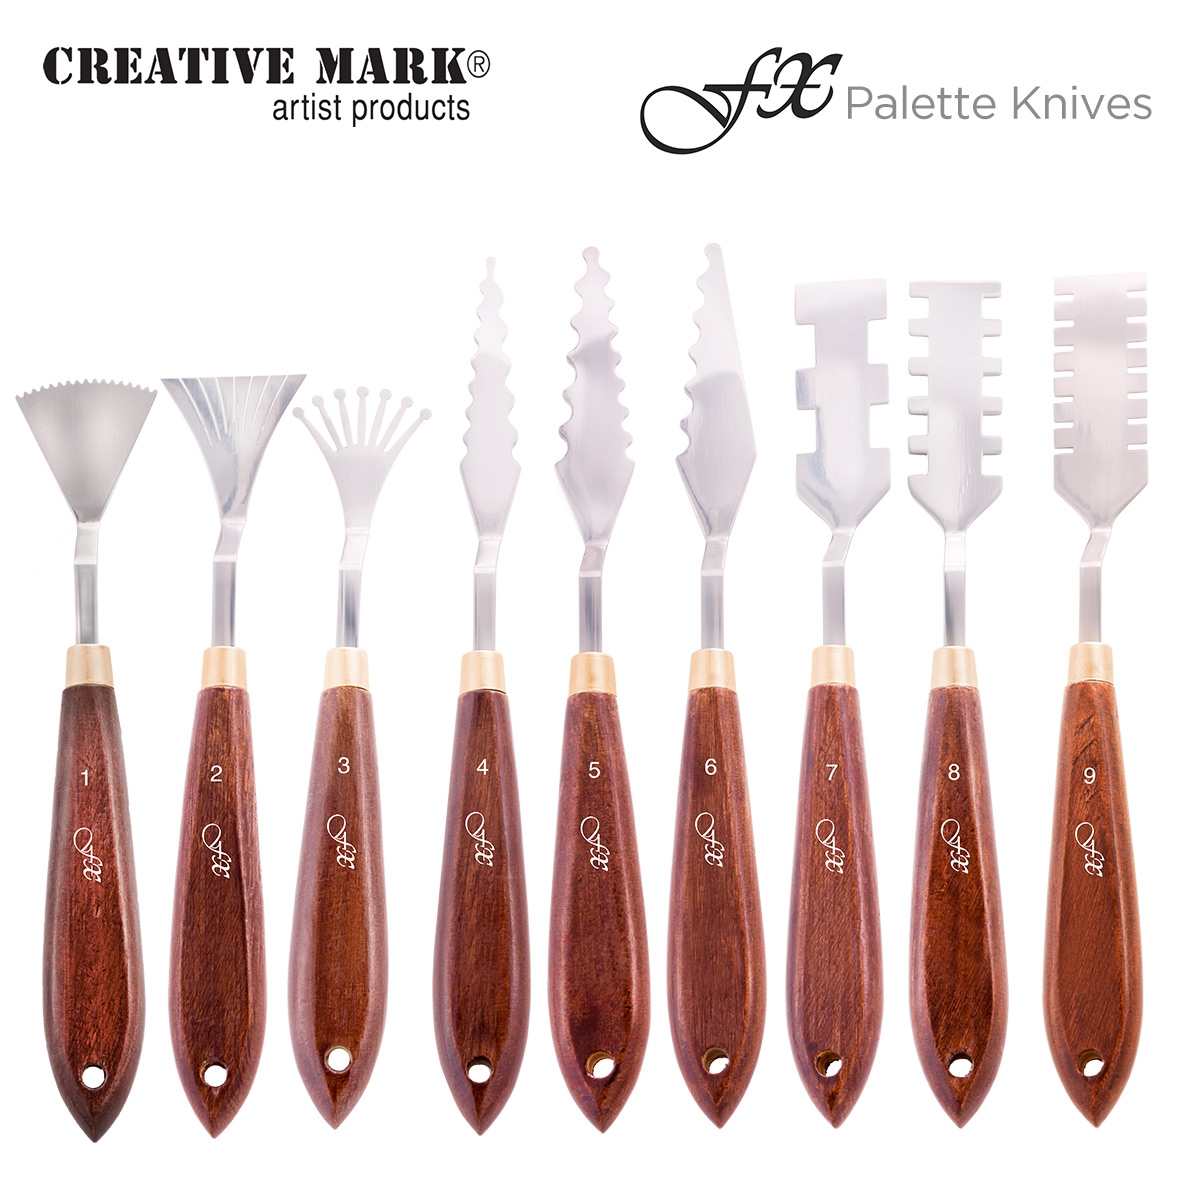 Creative Mark FX Special Effects Palette Knives